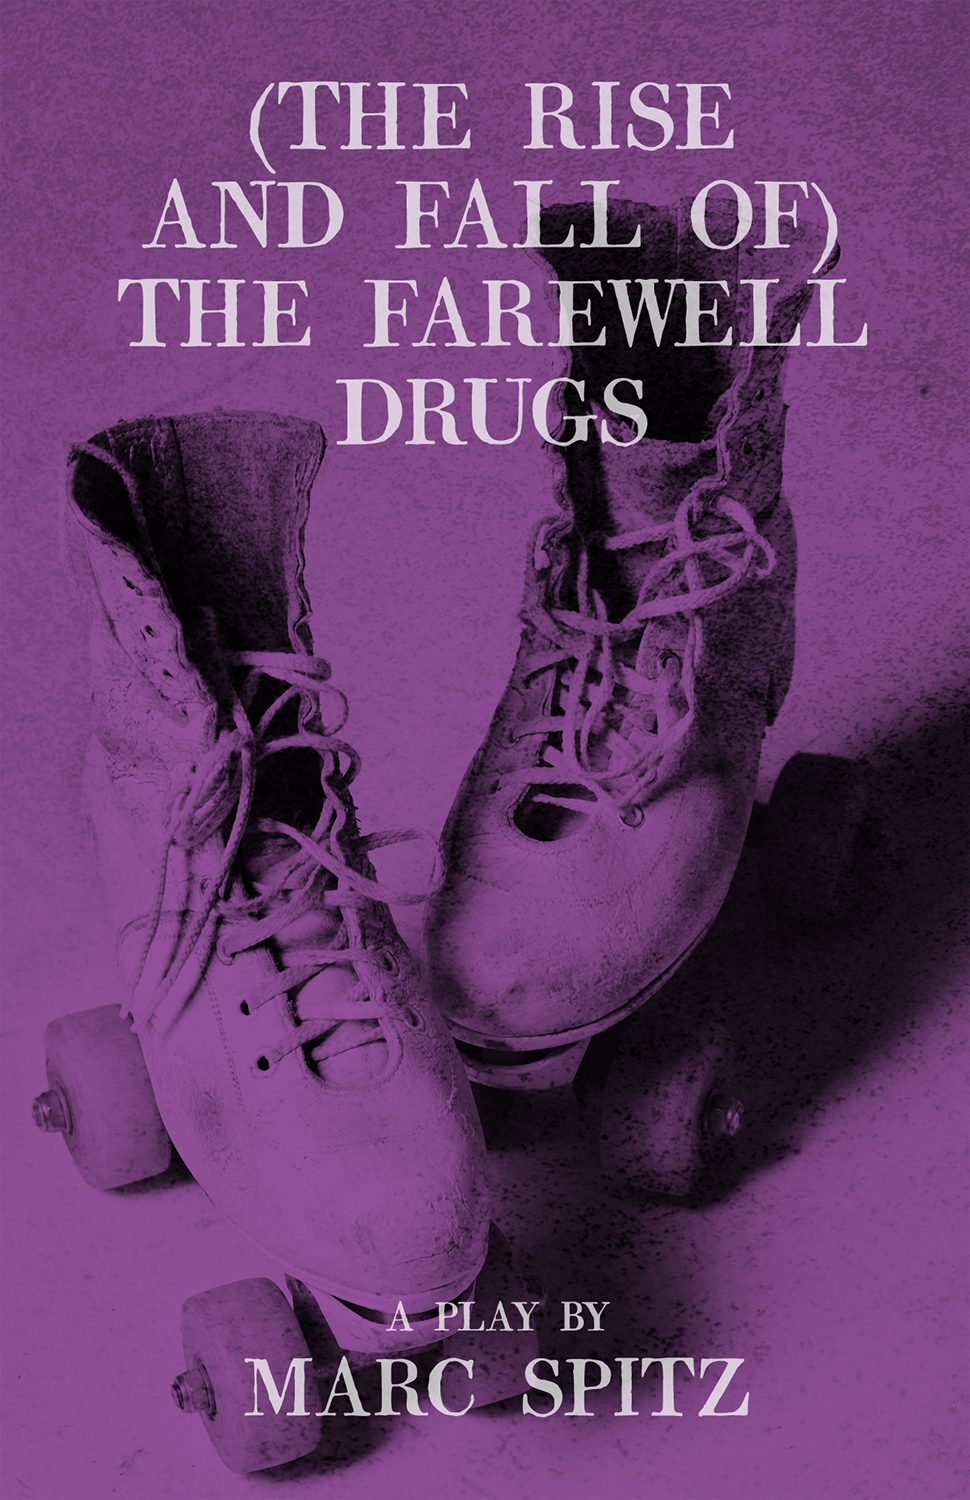 (The Rise and Fall of) The Farewell Drugs By: Marc Spitz